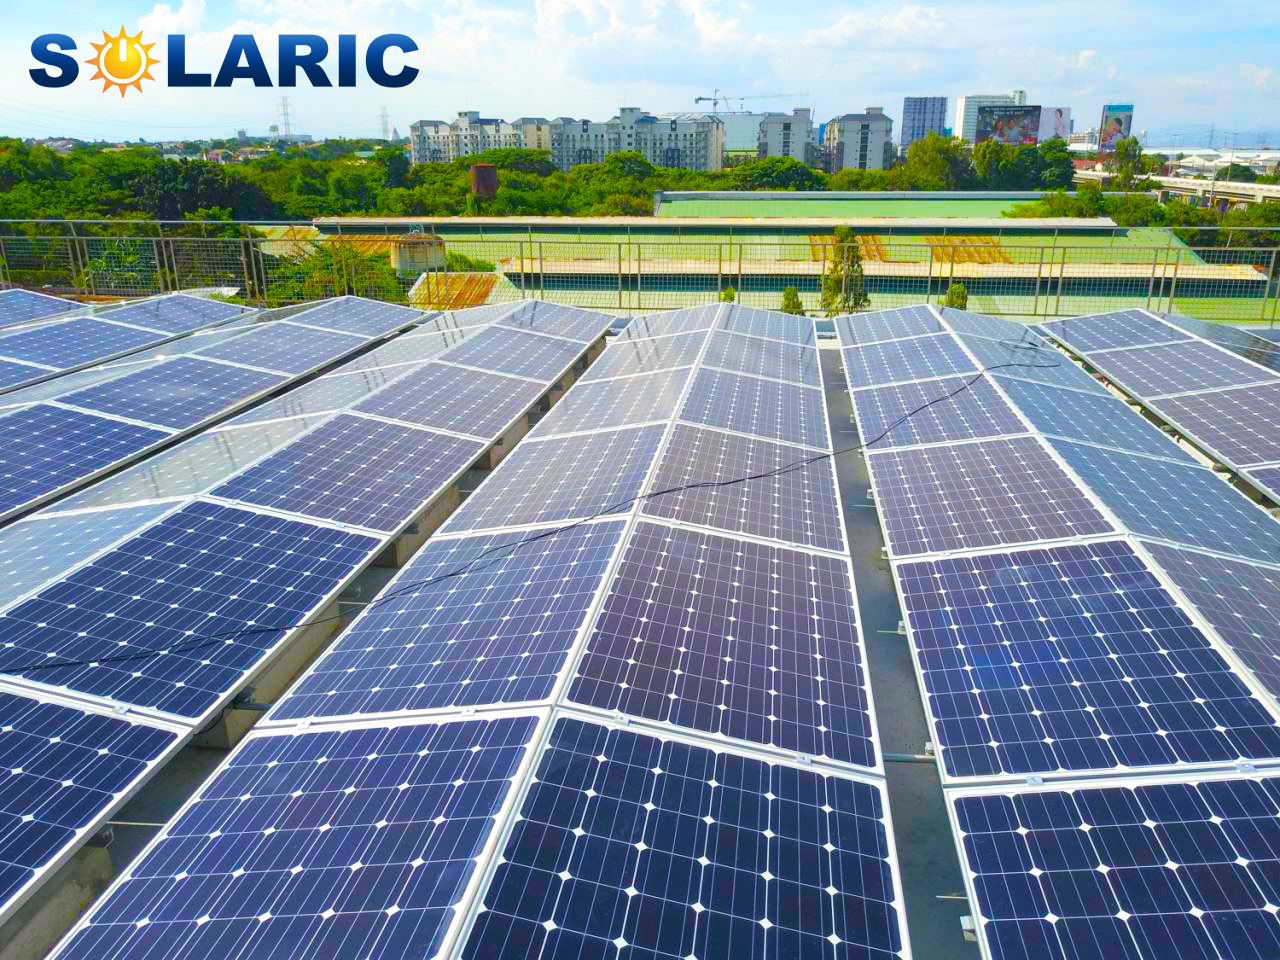 THE CHOICE TO GO SOLARIC